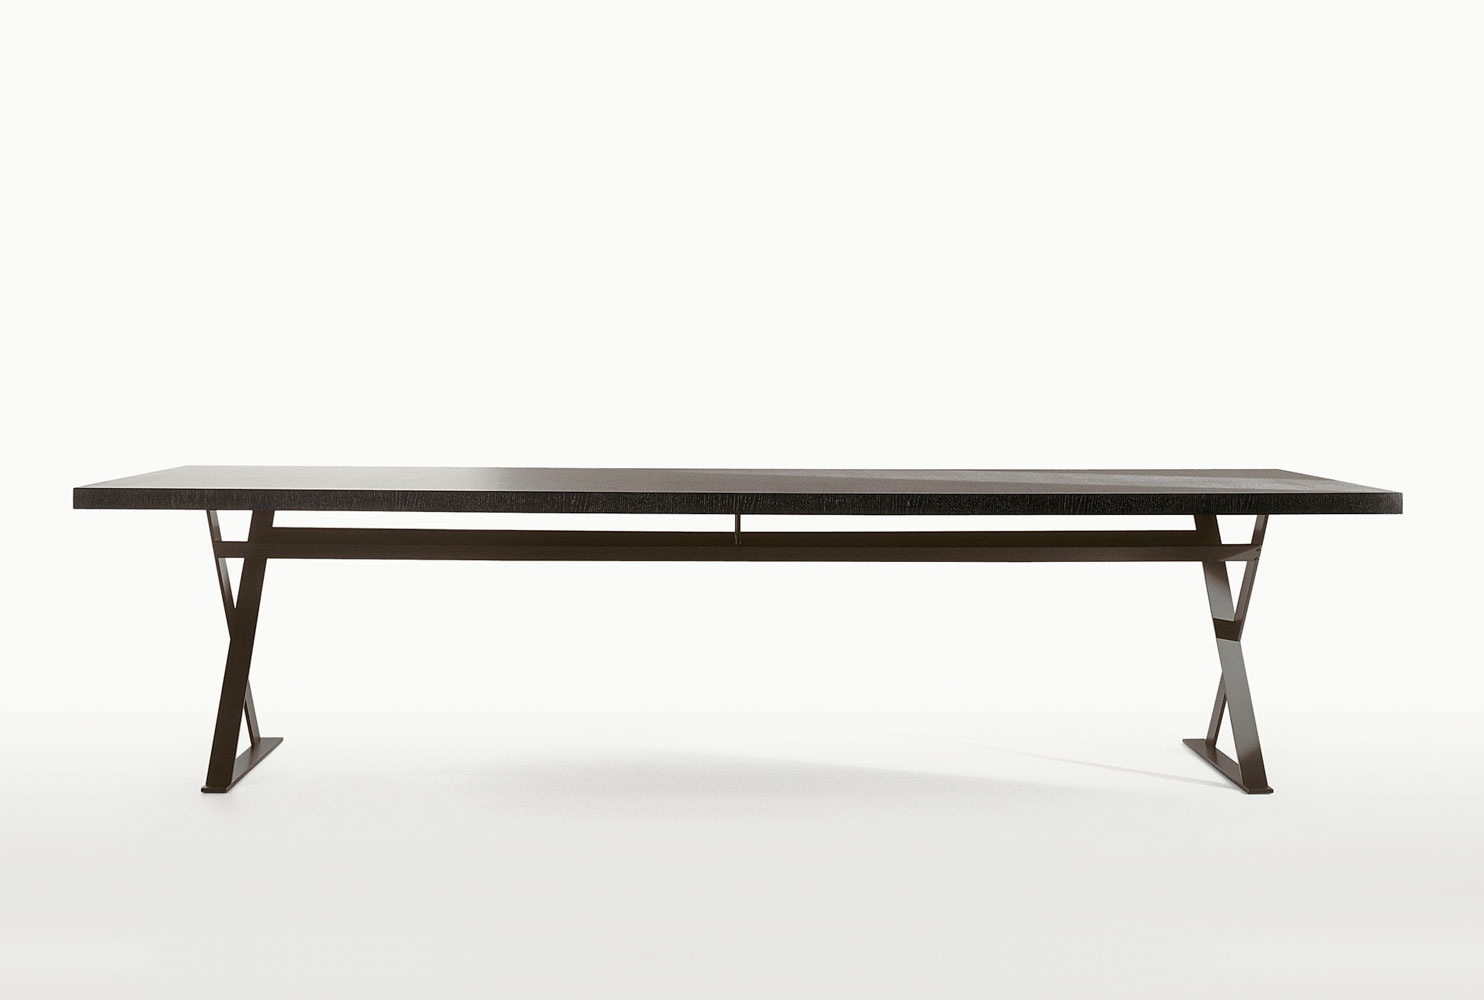 Picture of: Dining Table On Metal Frame With Wooden Table Top Max B B Italia Luxury Furniture Mr